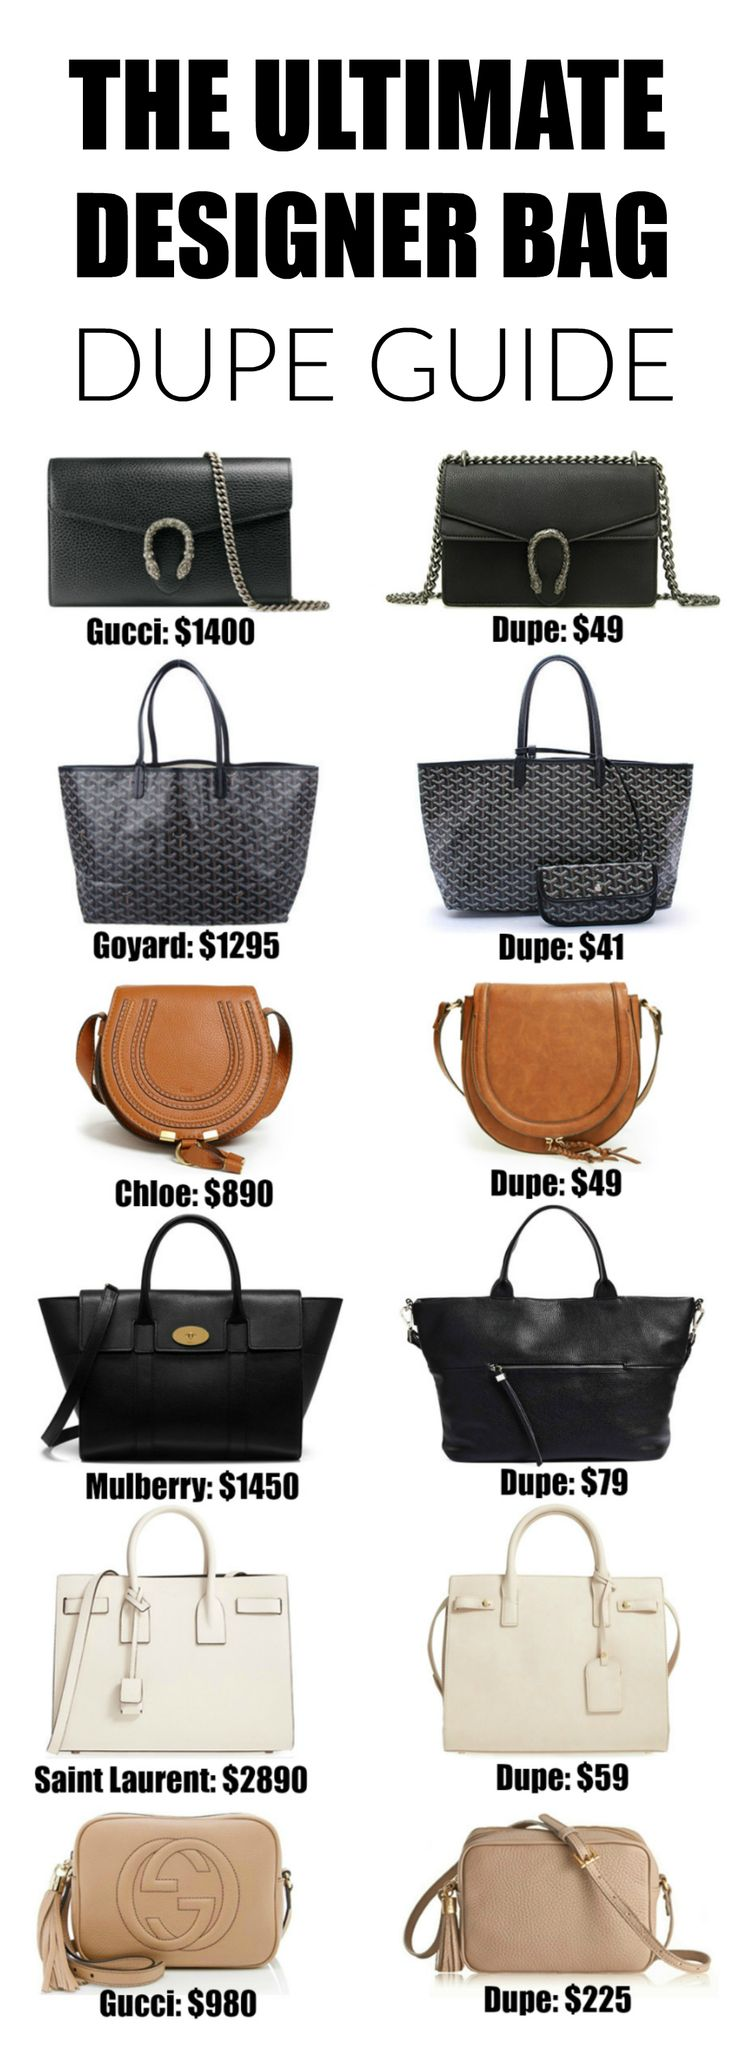 You won't believe how similar these dupes are to the designer bag originals! | Fashion blogger Mash Elle shares a complete designer bag dupe guide! Designer bag dupes for Chloe, Gucci, Goyard, Gucci, Prada, Chanel, Clare V, Saint Laurent, Valentino, Fendi, Burberry, Givenchy and Mulberry!